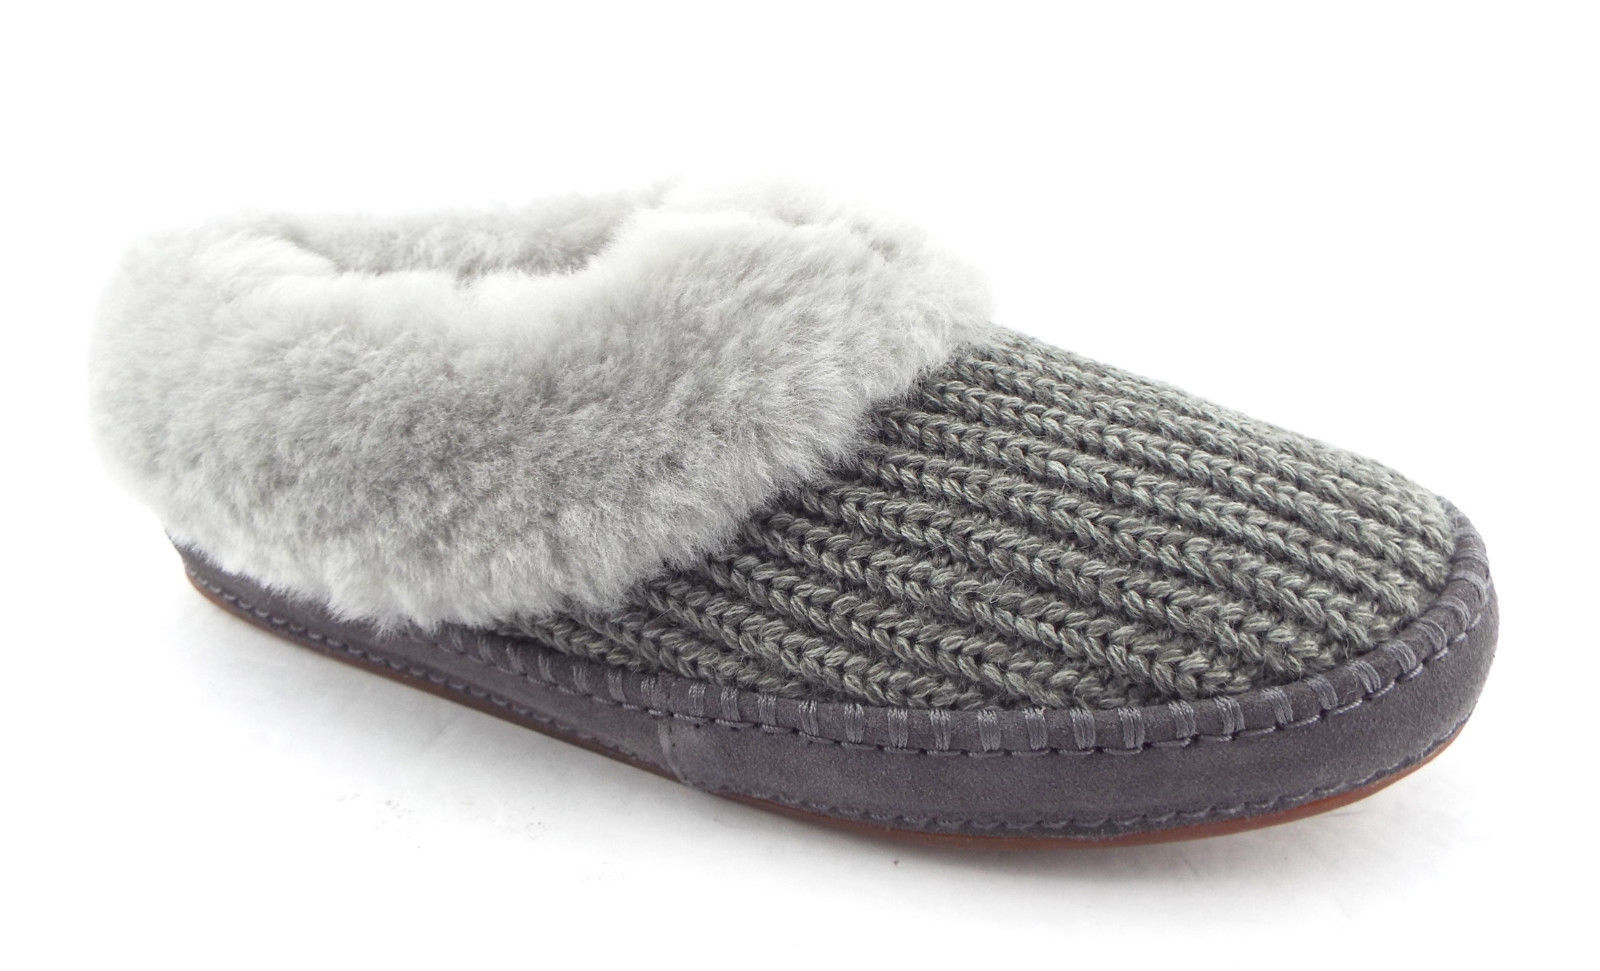 8cffaf32826 New UGG Size 11 WRIN Gray Knit Slippers w/ and 50 similar items